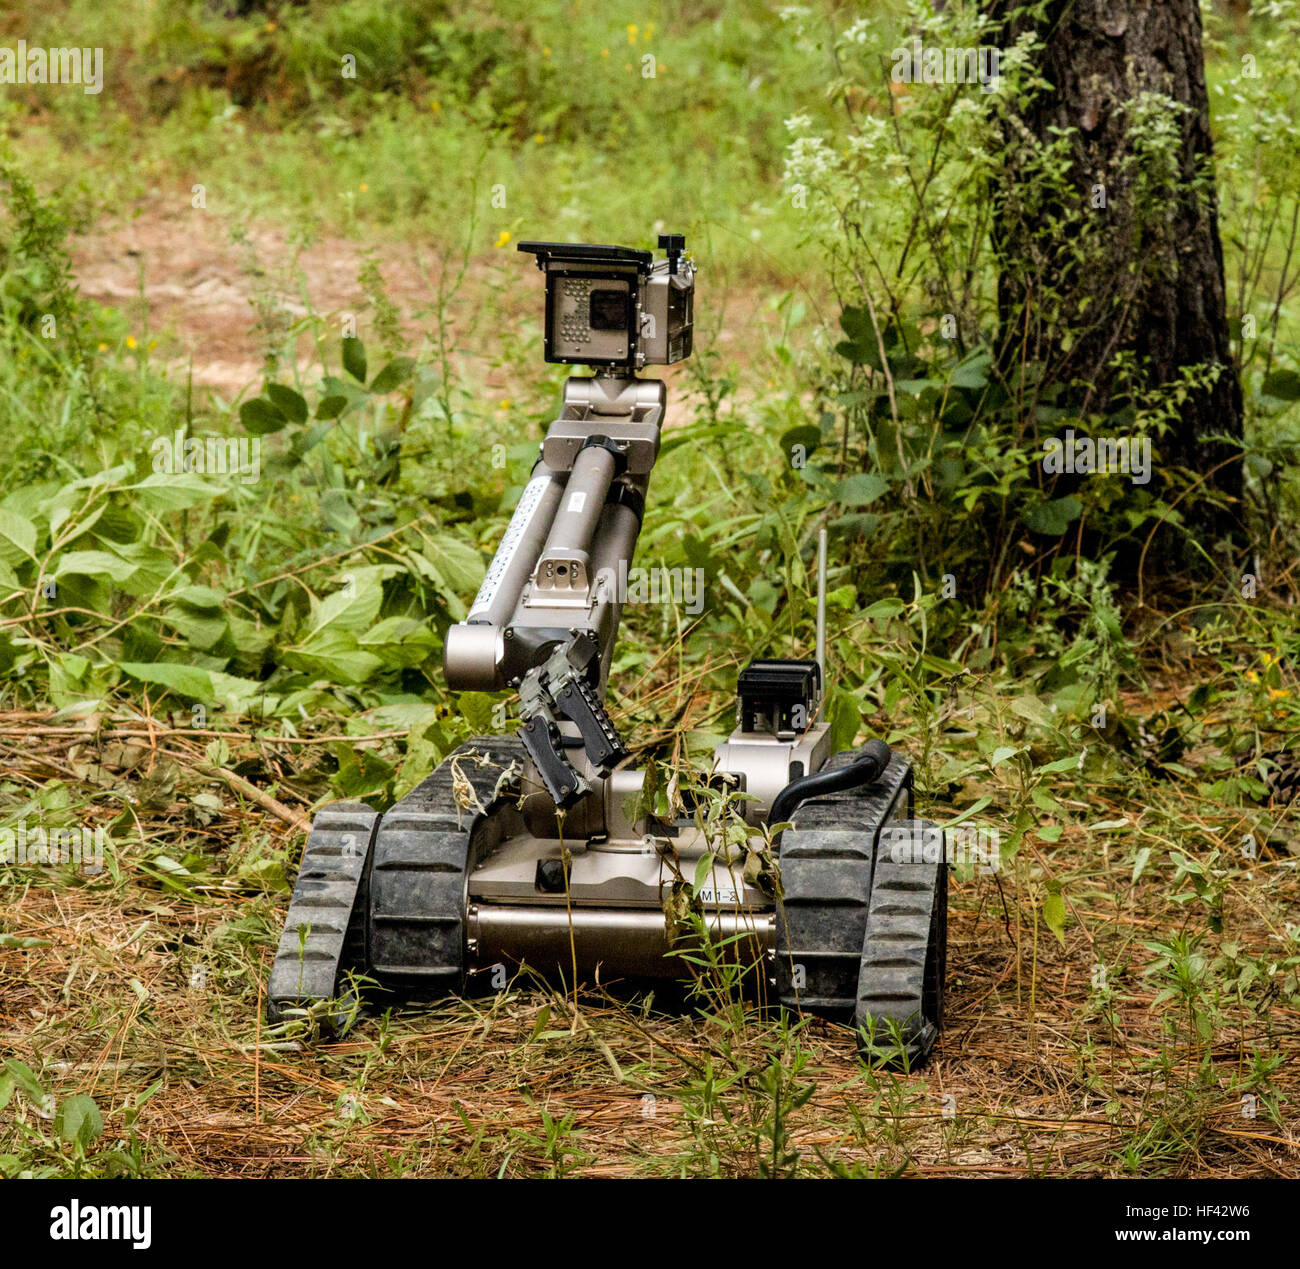 An Explosive Ordnance Disposal (EOD) robot lifts its camera to view where it is going and what might lie ahead during Stock Photo